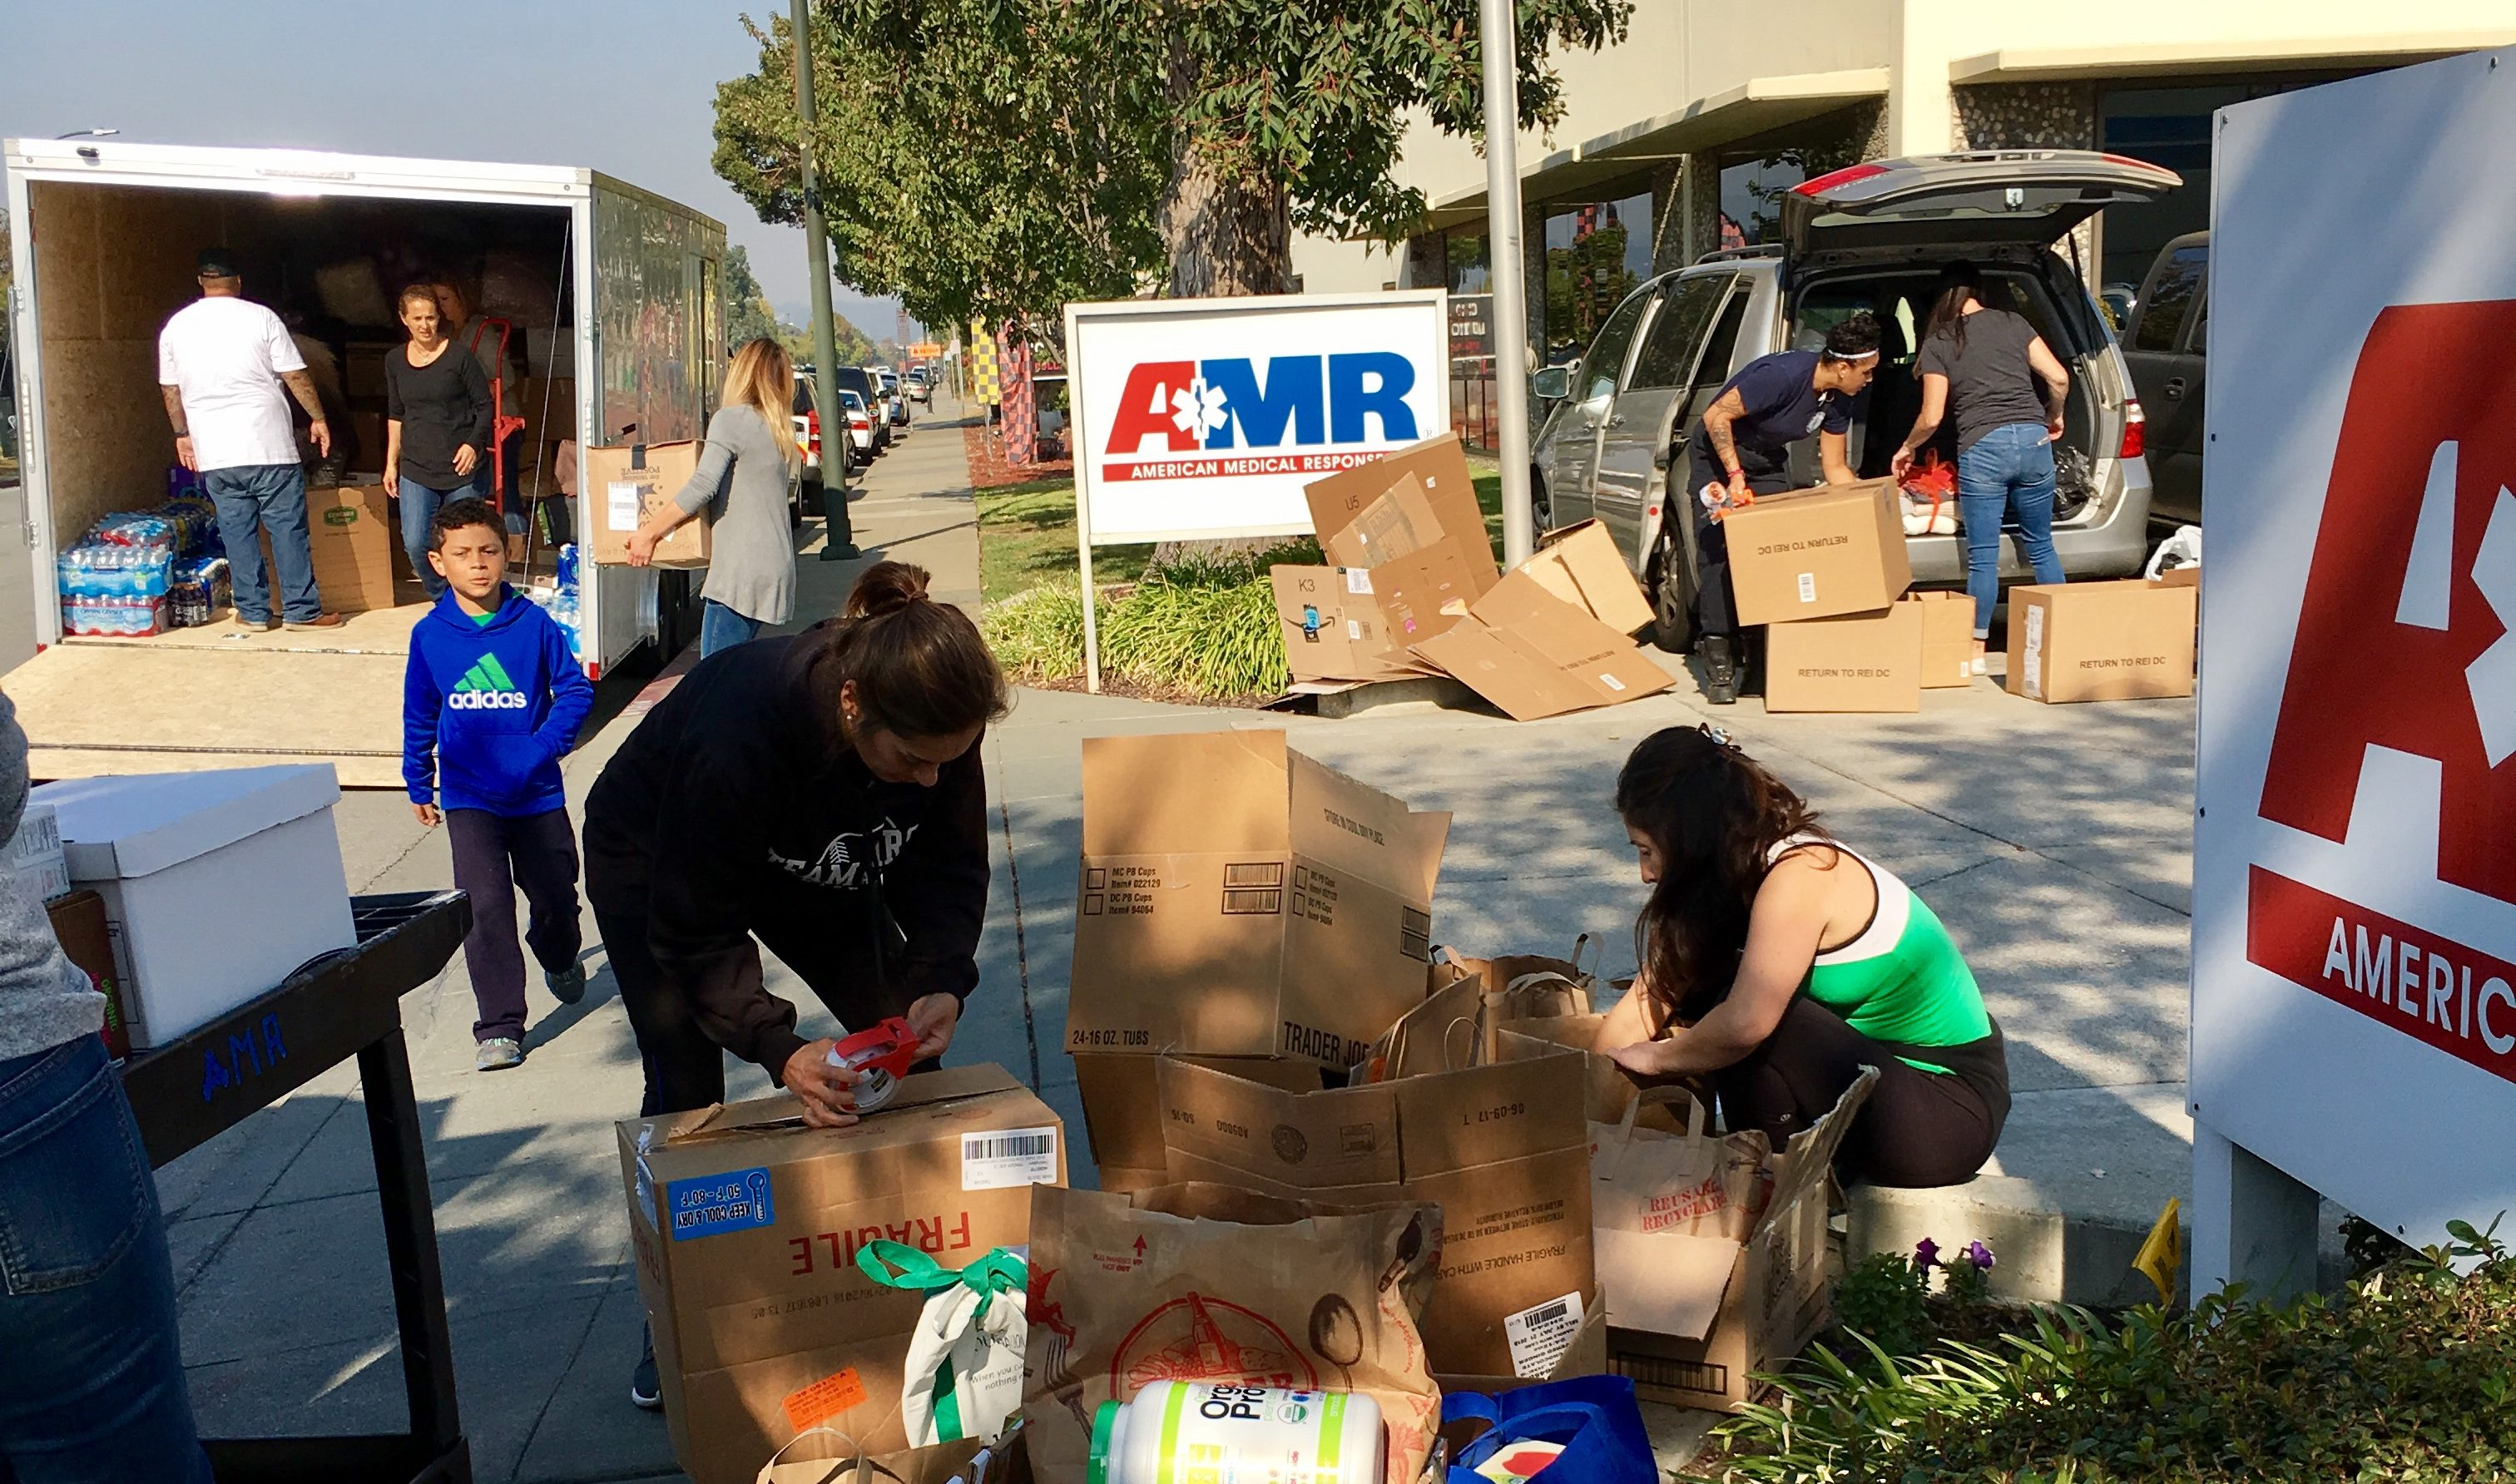 Peninsula JCC volunteers delivering relief items to American Medical Response in San Mateo, Oct. 13, 2017 (Photo/Courtesy PJCC)